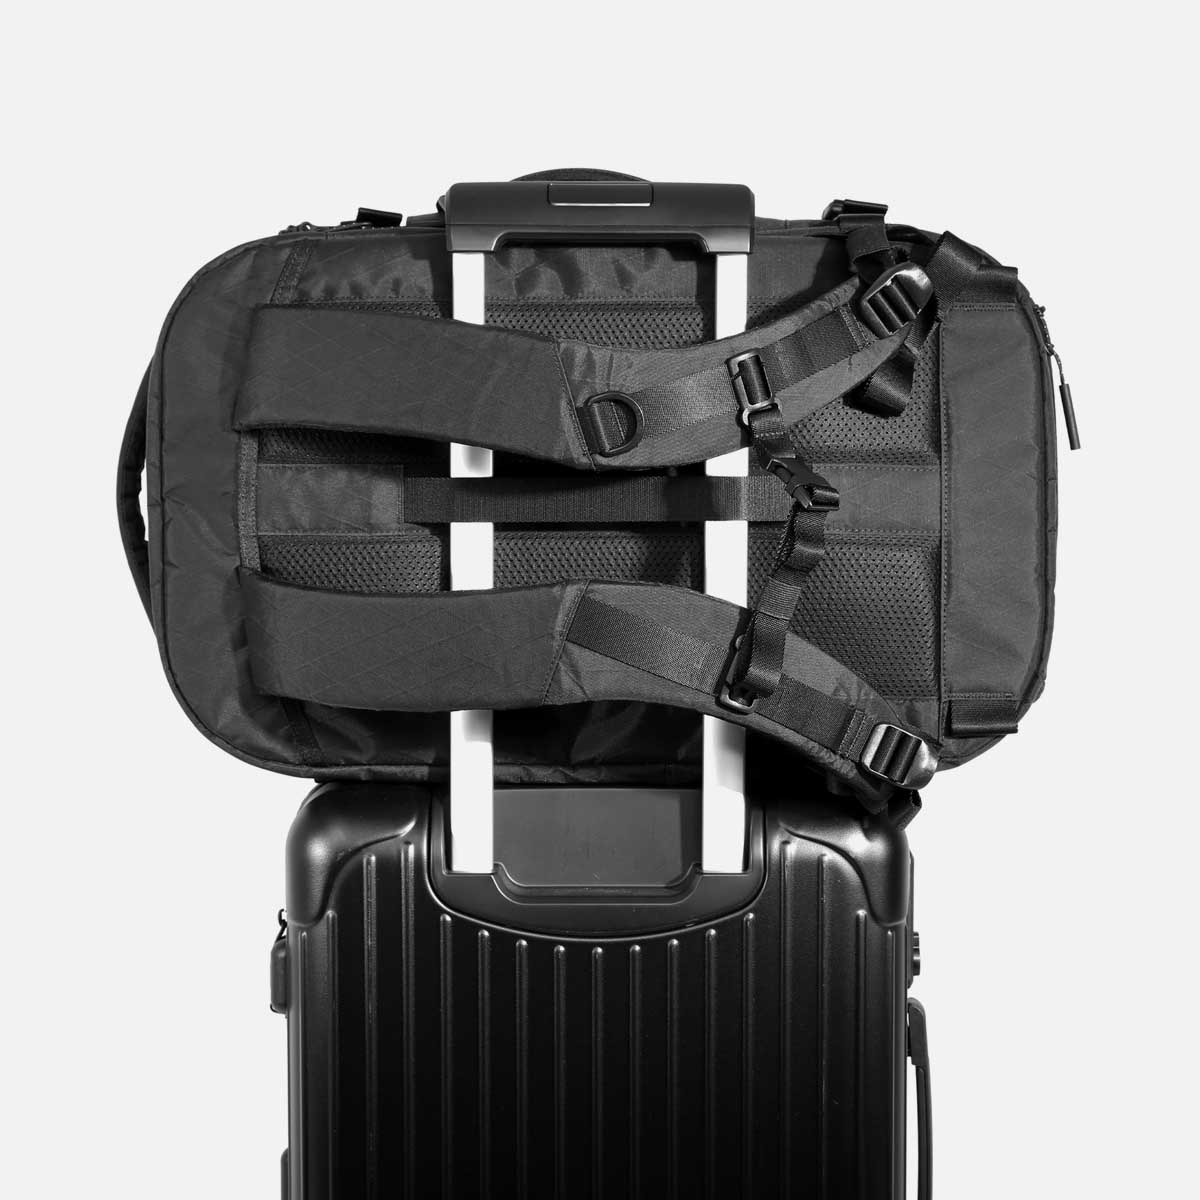 Luggage handle pass-through for convenient carry.